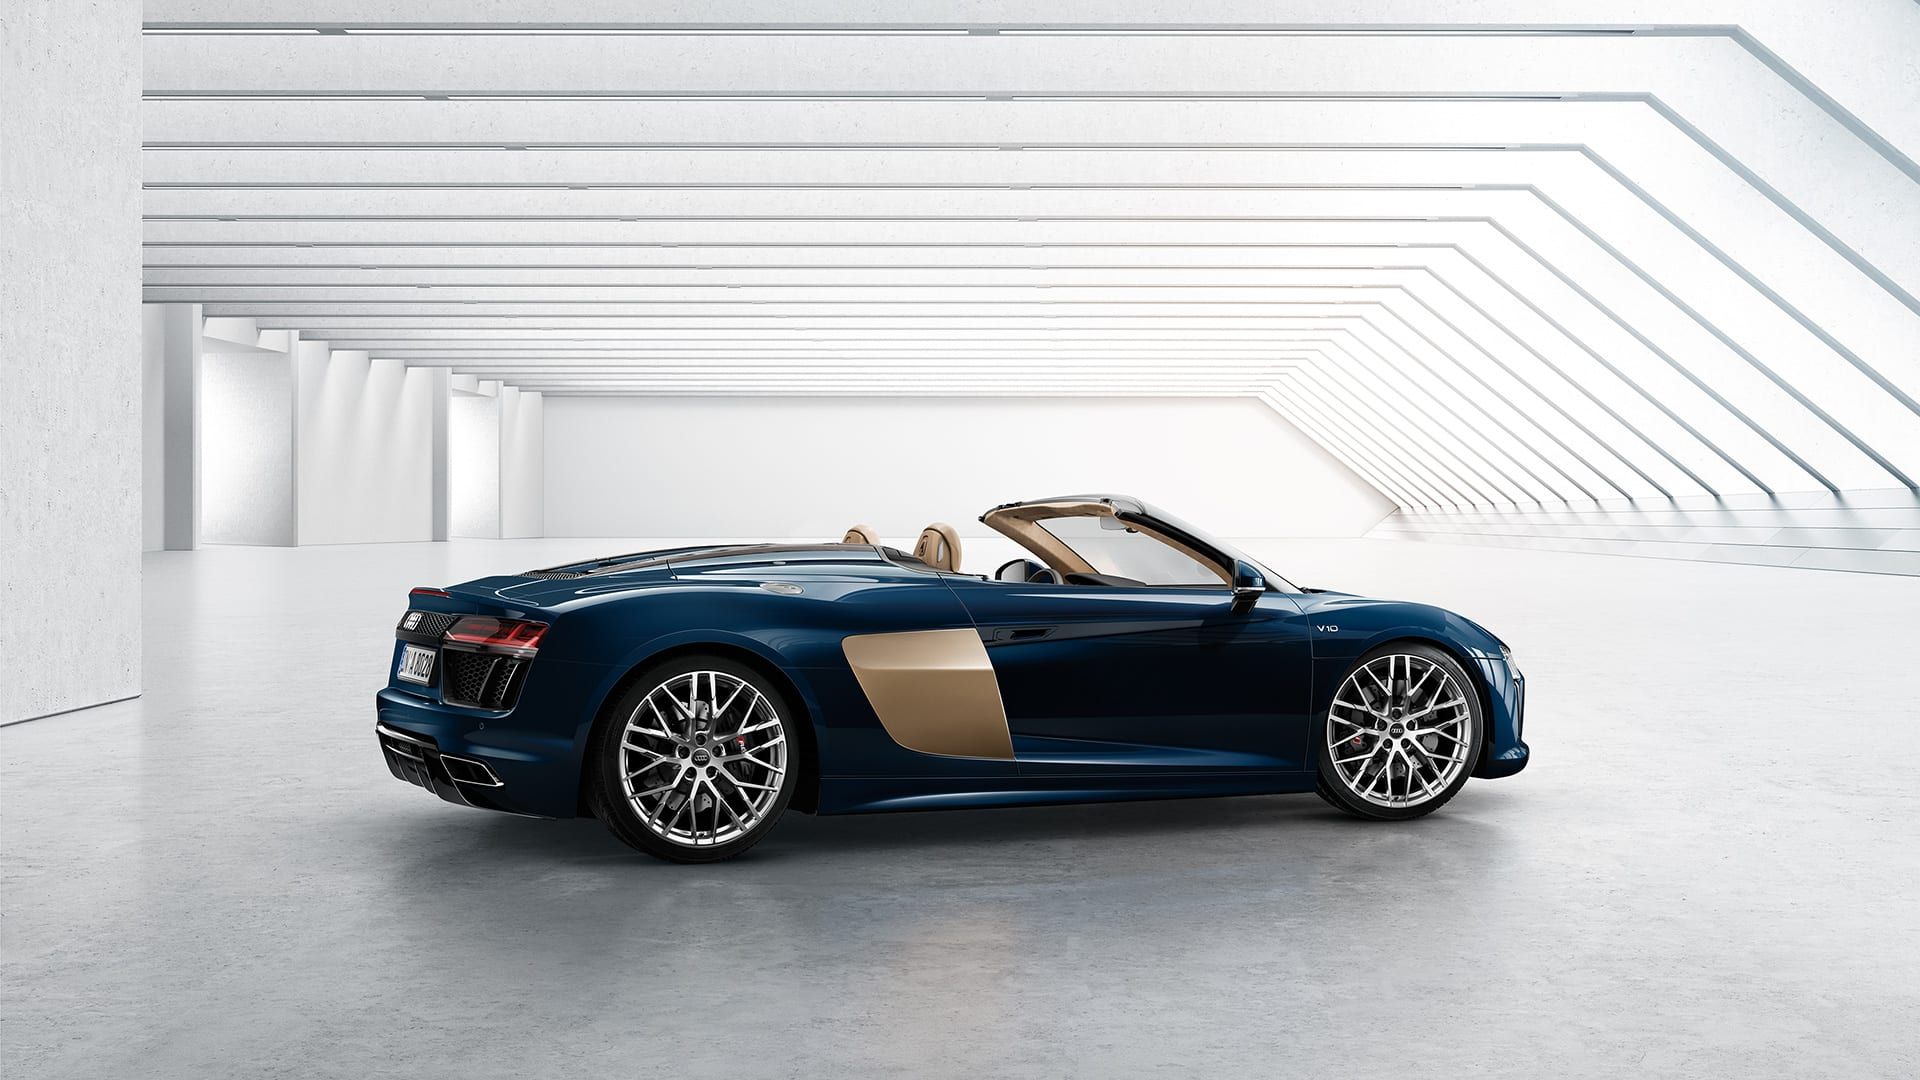 r8 spyder v10 audi deutschland. Black Bedroom Furniture Sets. Home Design Ideas